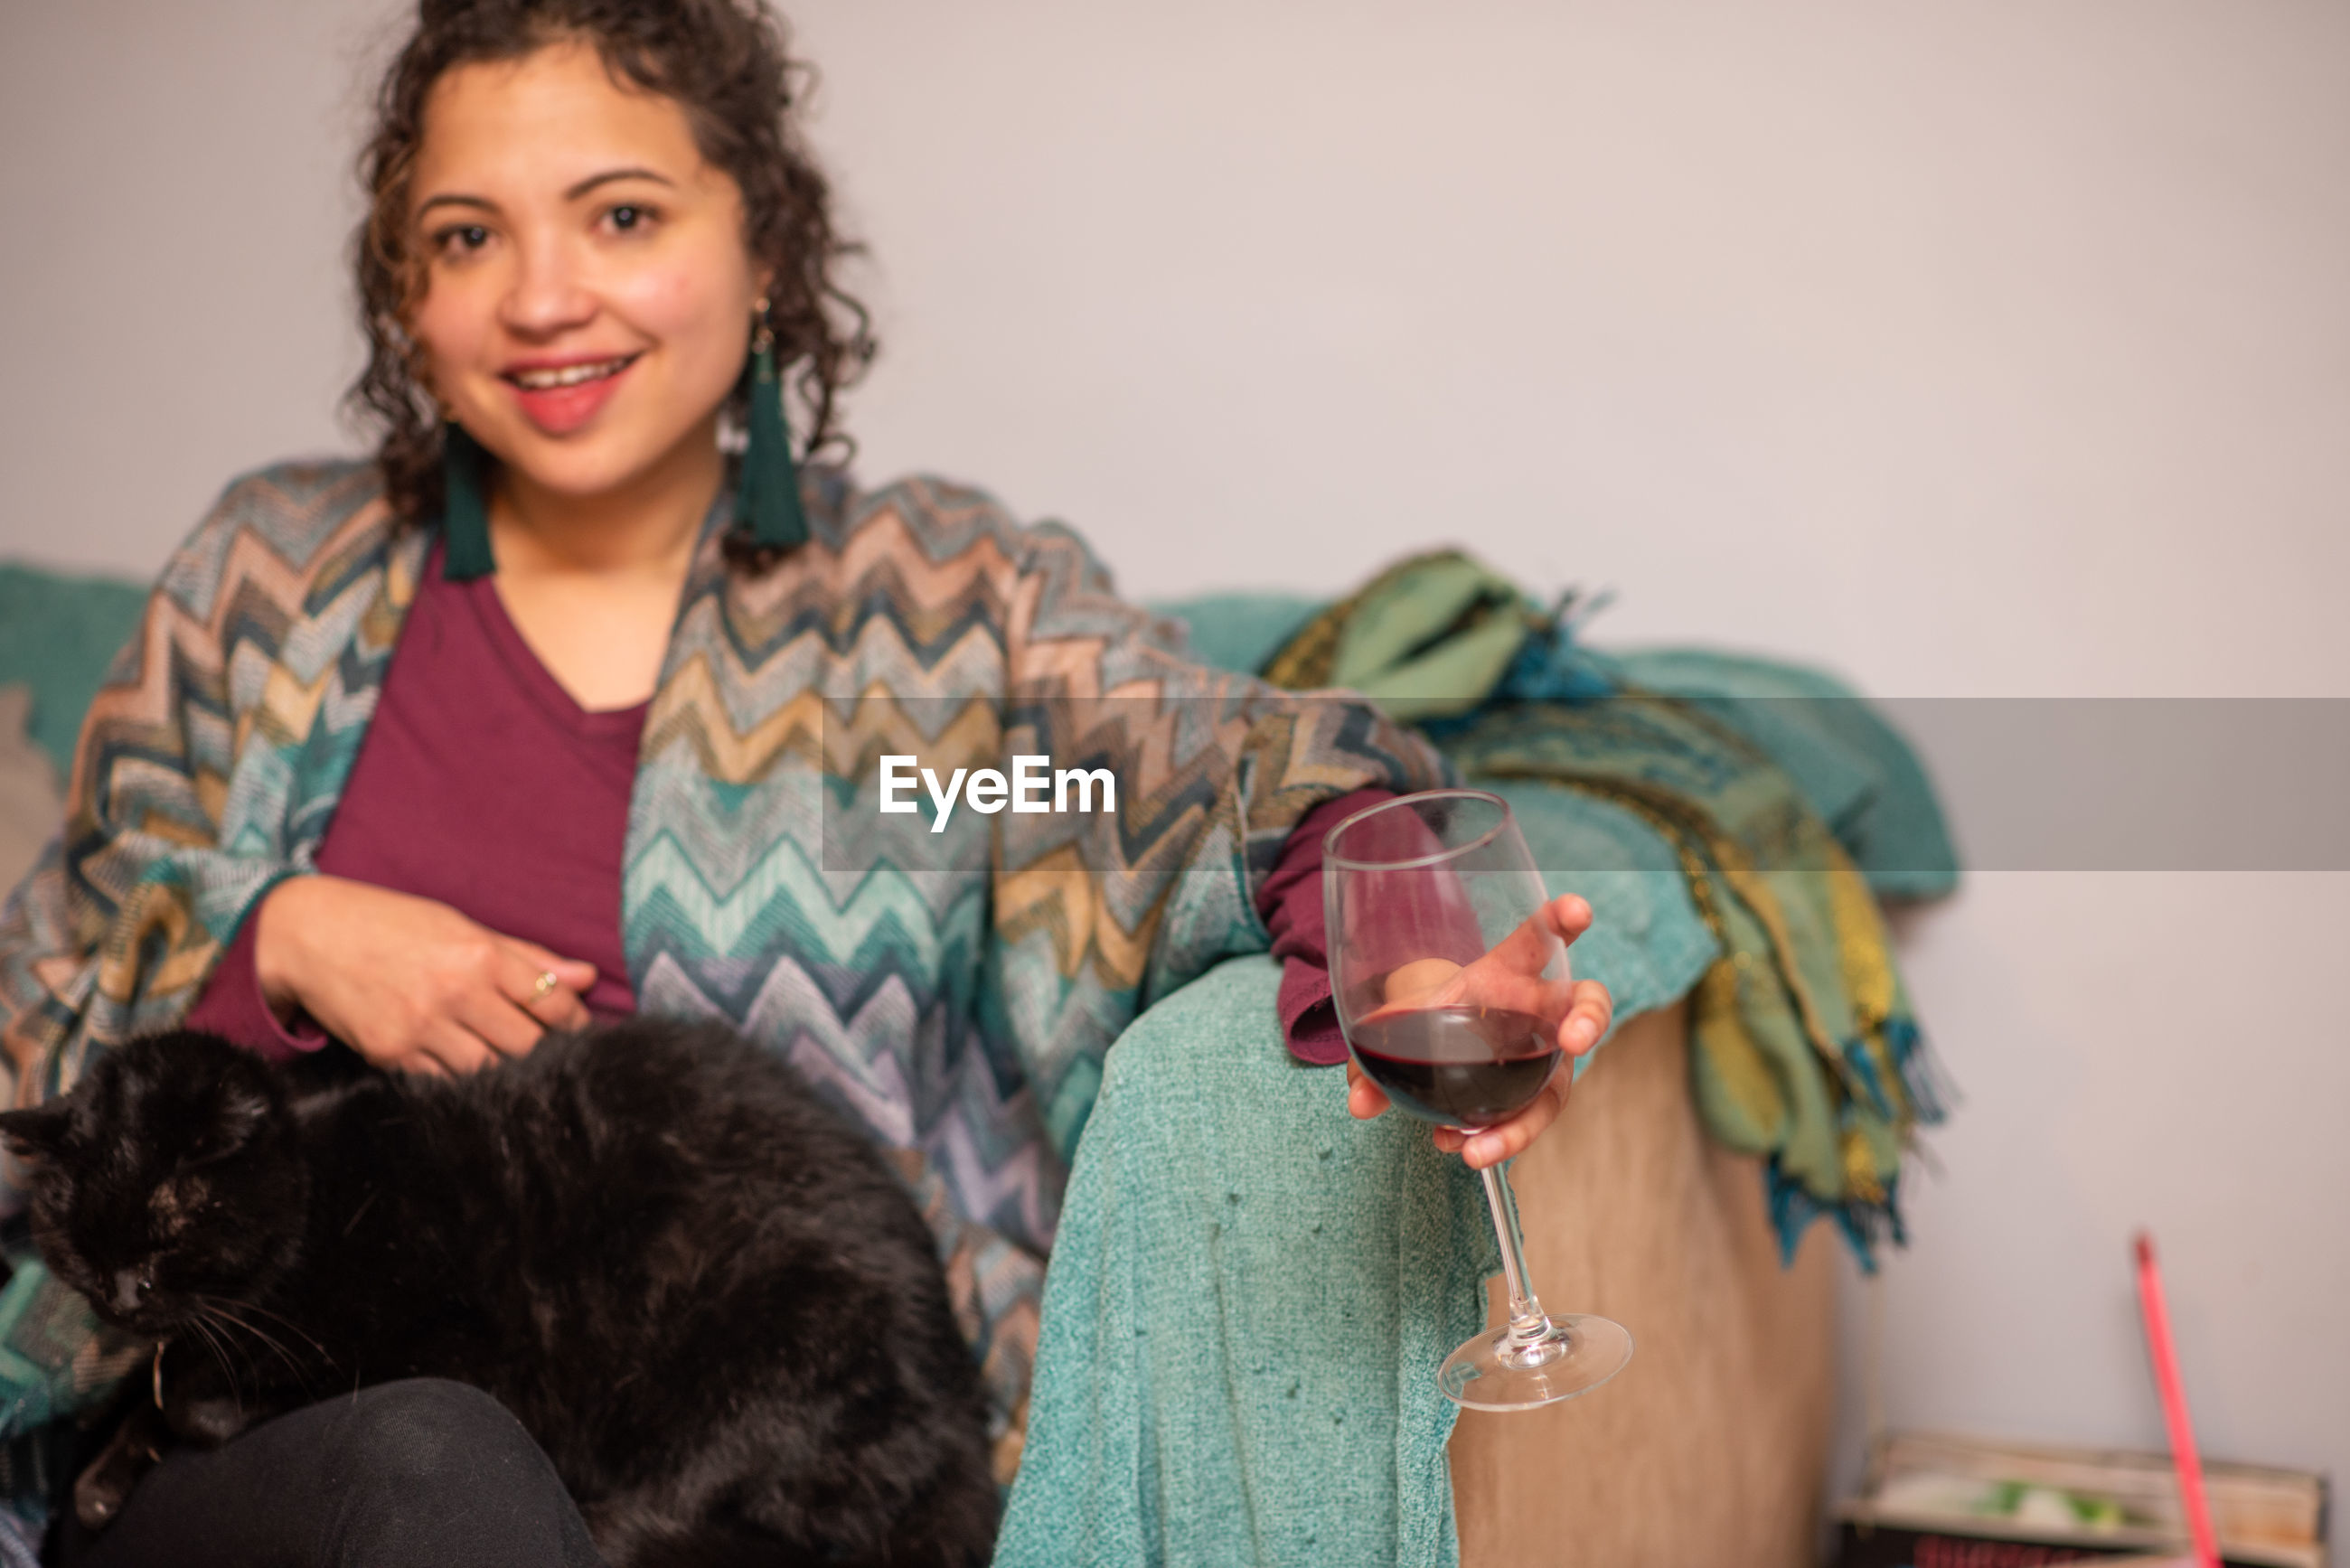 Portrait of smiling woman holding drink while sitting with cat